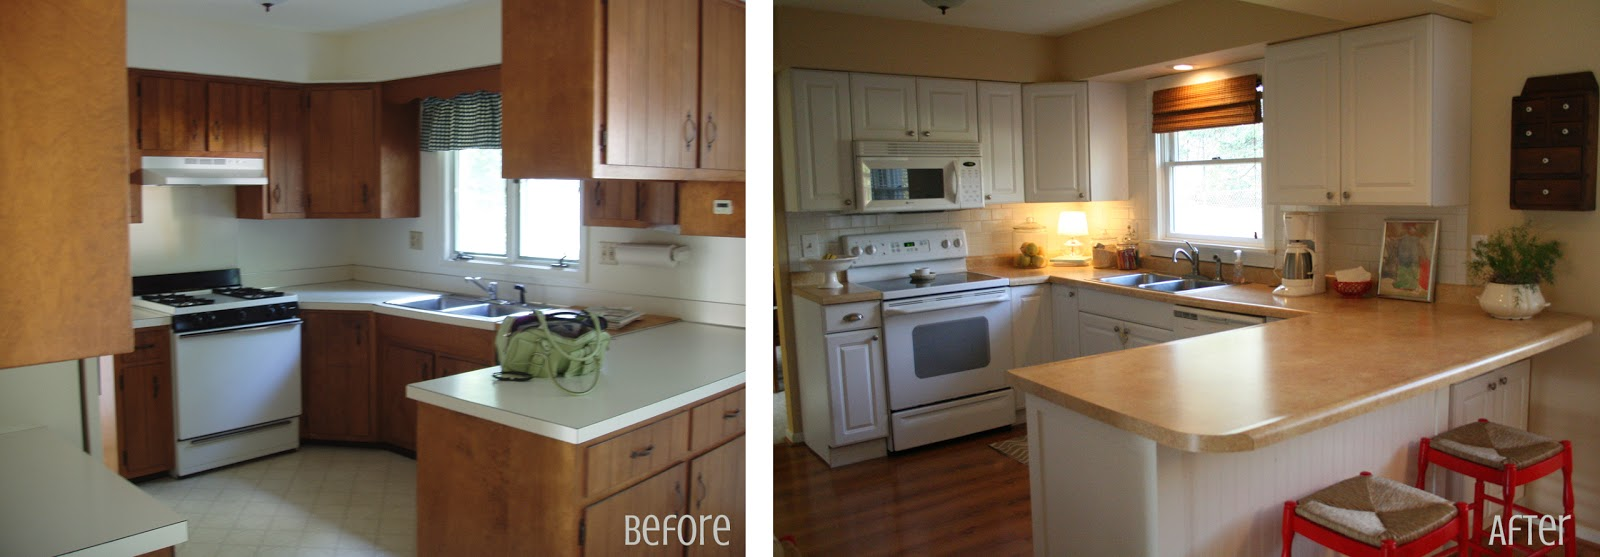 Graphic made kitchen before after for Kitchen renovation before and after